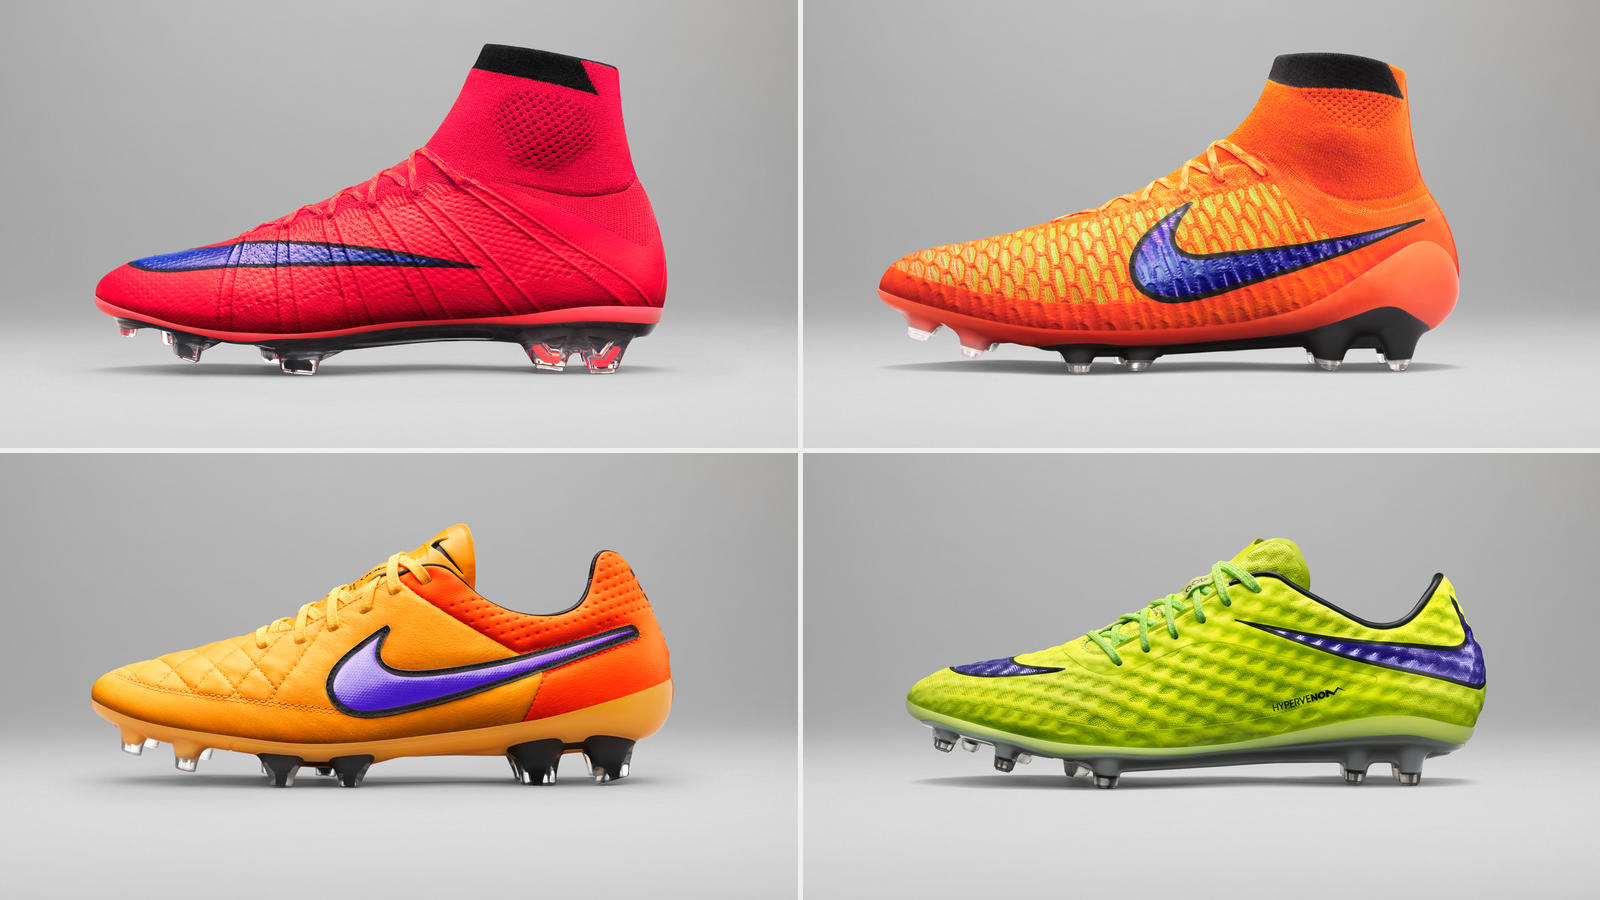 new product b1c72 657f0 Mercurial-Magista-Tiempo-Hypervenom-Brighten-Pitch